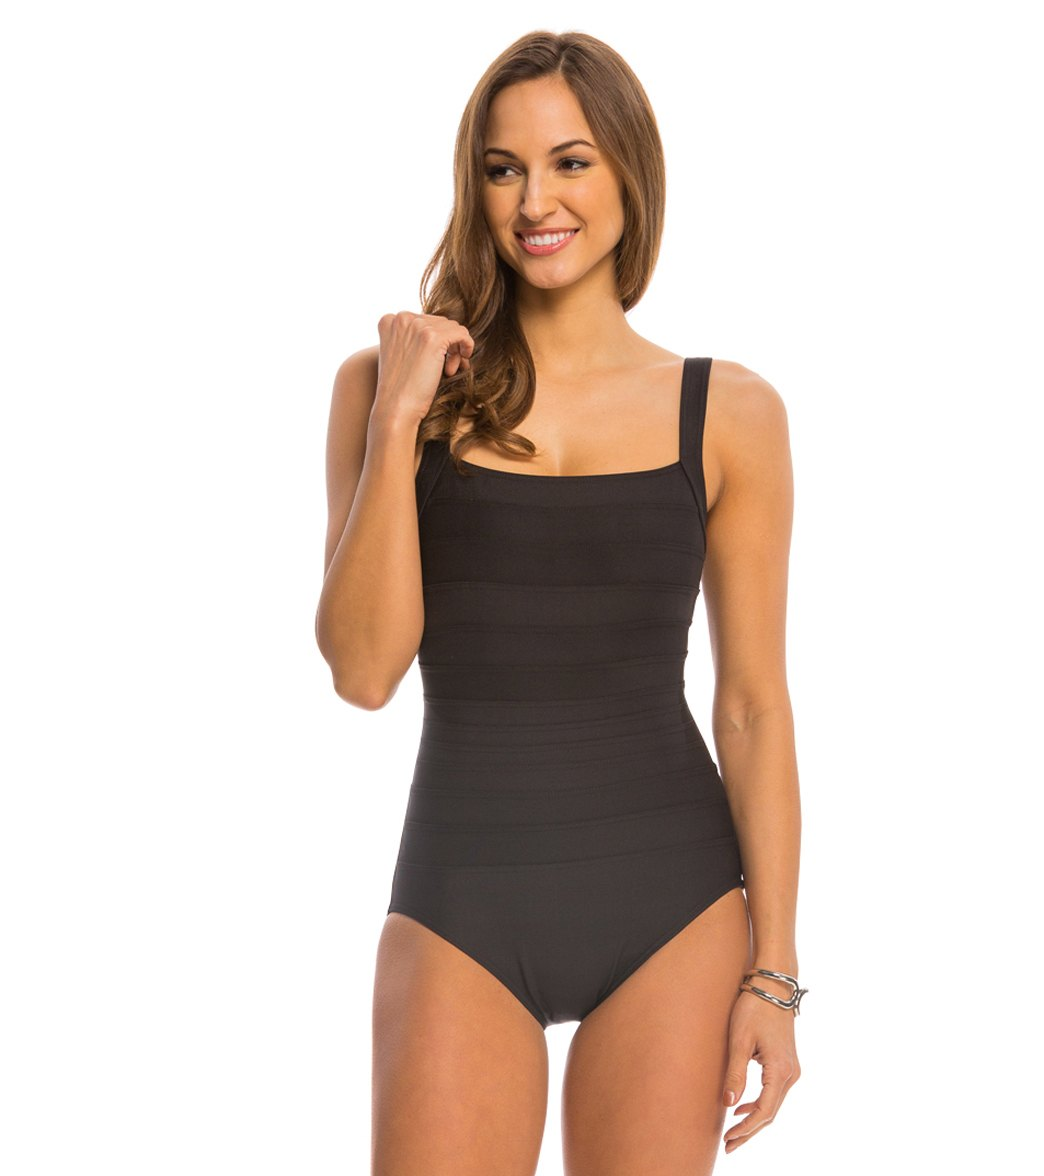 696ac3d0bd9 ... Miraclesuit Spectra Band-It Square Neck One Piece Swimsuit. Play Video.  MODEL MEASUREMENTS